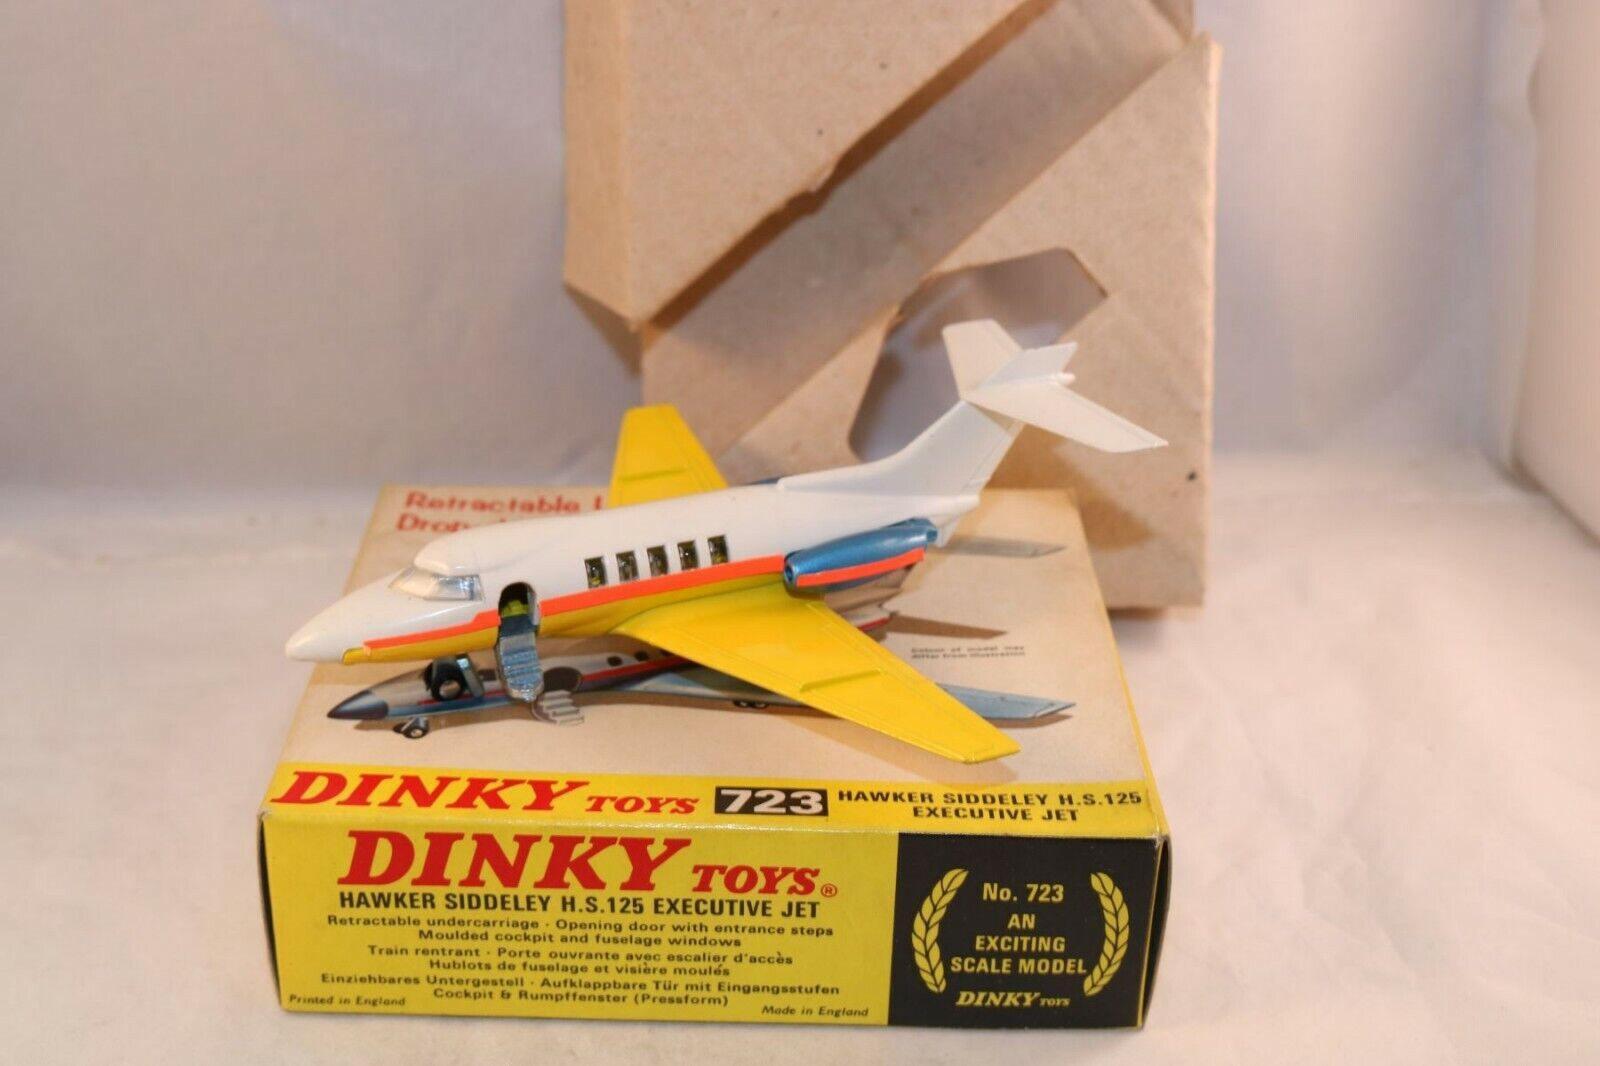 promozioni Dinky giocattoli 723 Hawker Siddeley Siddeley Siddeley H.S.125 Executive jet Perfect mint in scatola Superb  colorways incredibili